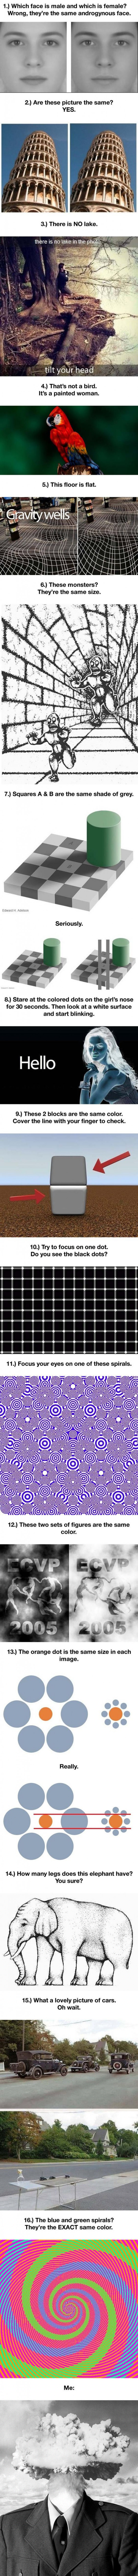 Melt Your Mind With These Optical Illusions